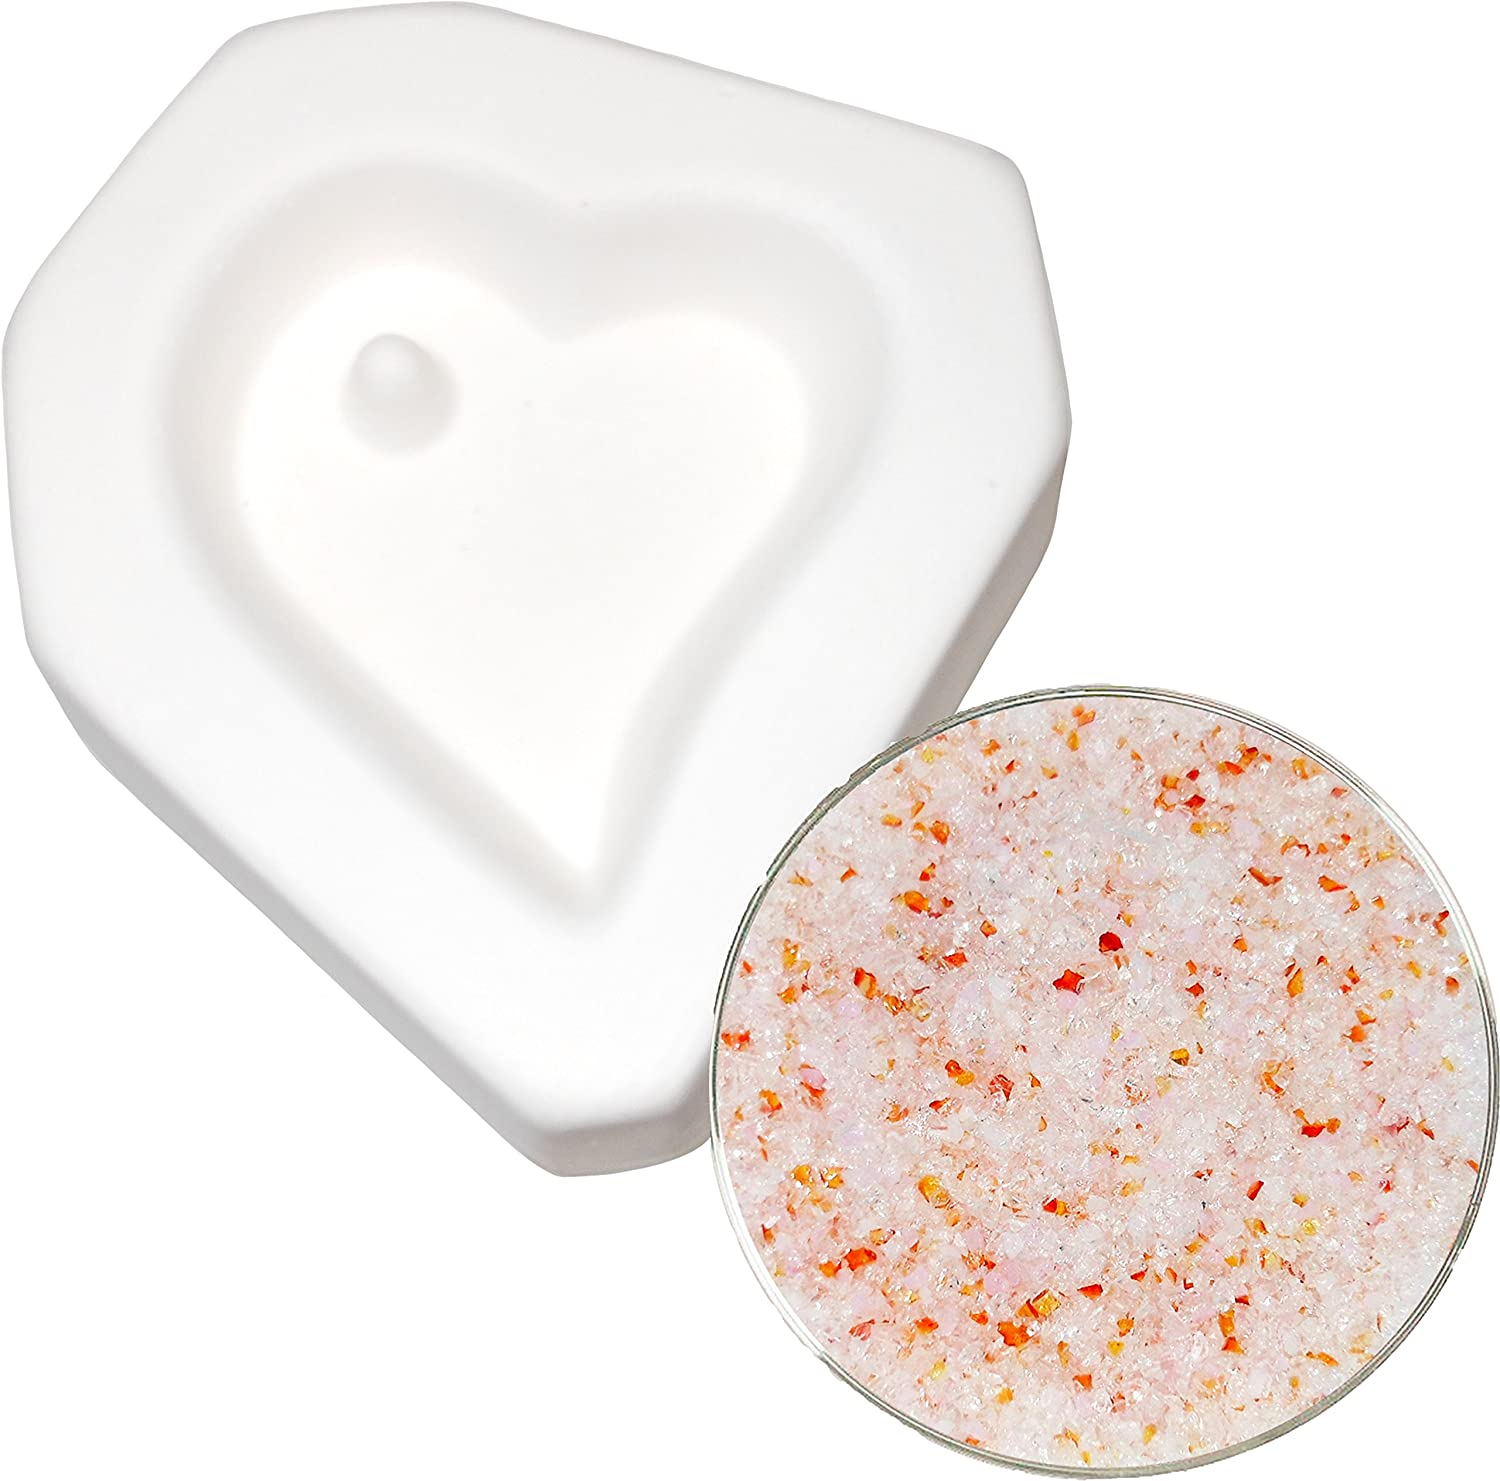 Heart With Hole Pendant and Forever Yours Frit Sampler Kit - Fusible Glass Jewelry Mold New Hampshire Craftworks 4336824997